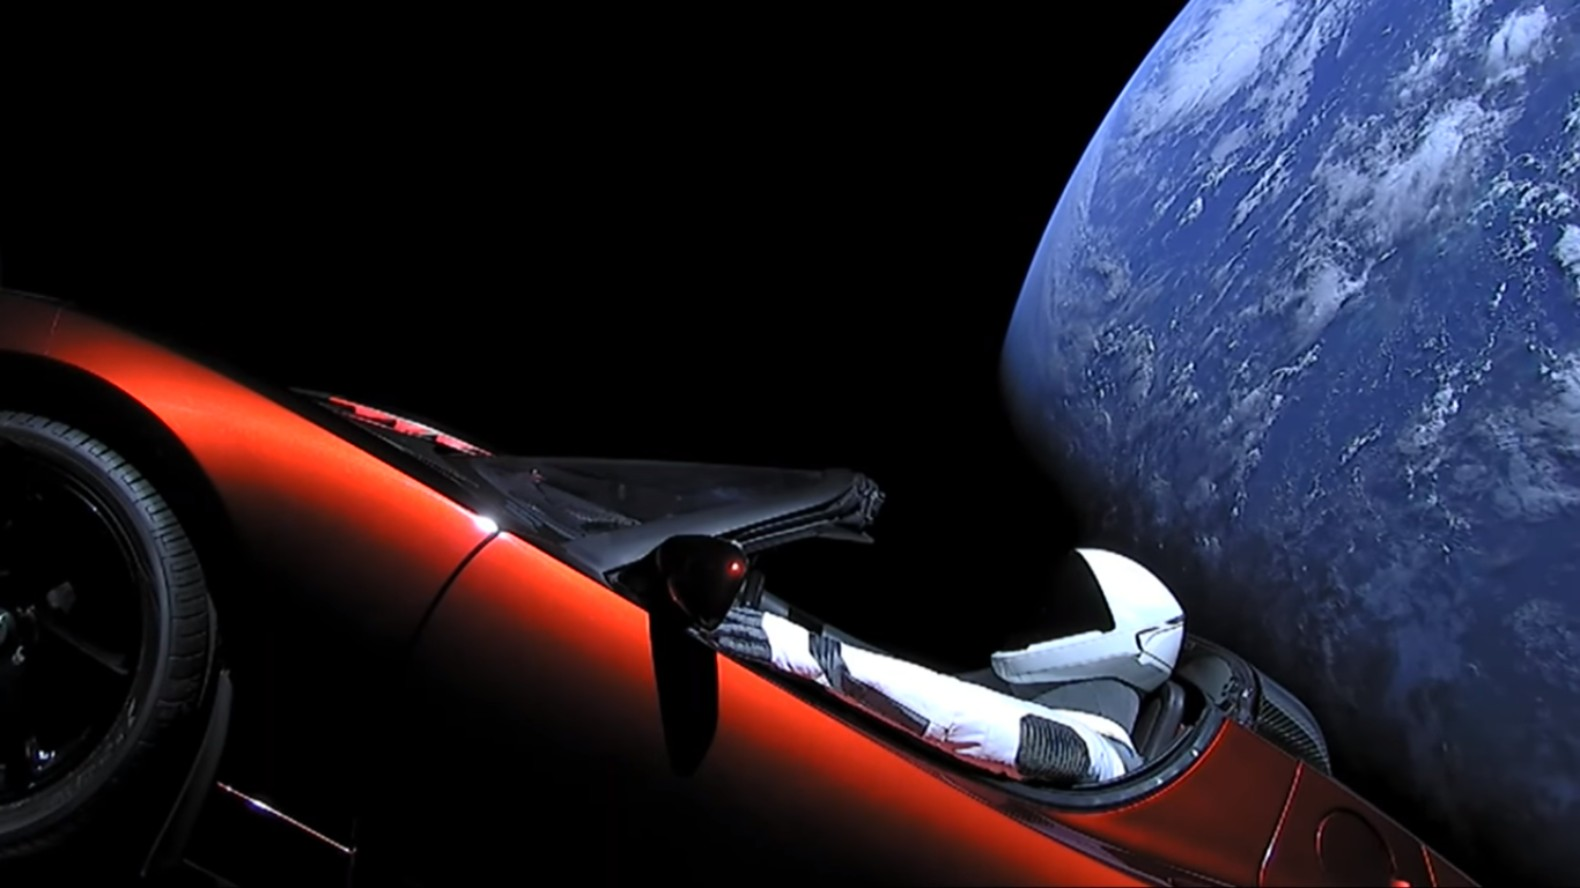 Elon Musk releases historic video of Starman cruising through space in a Tesla Roadster